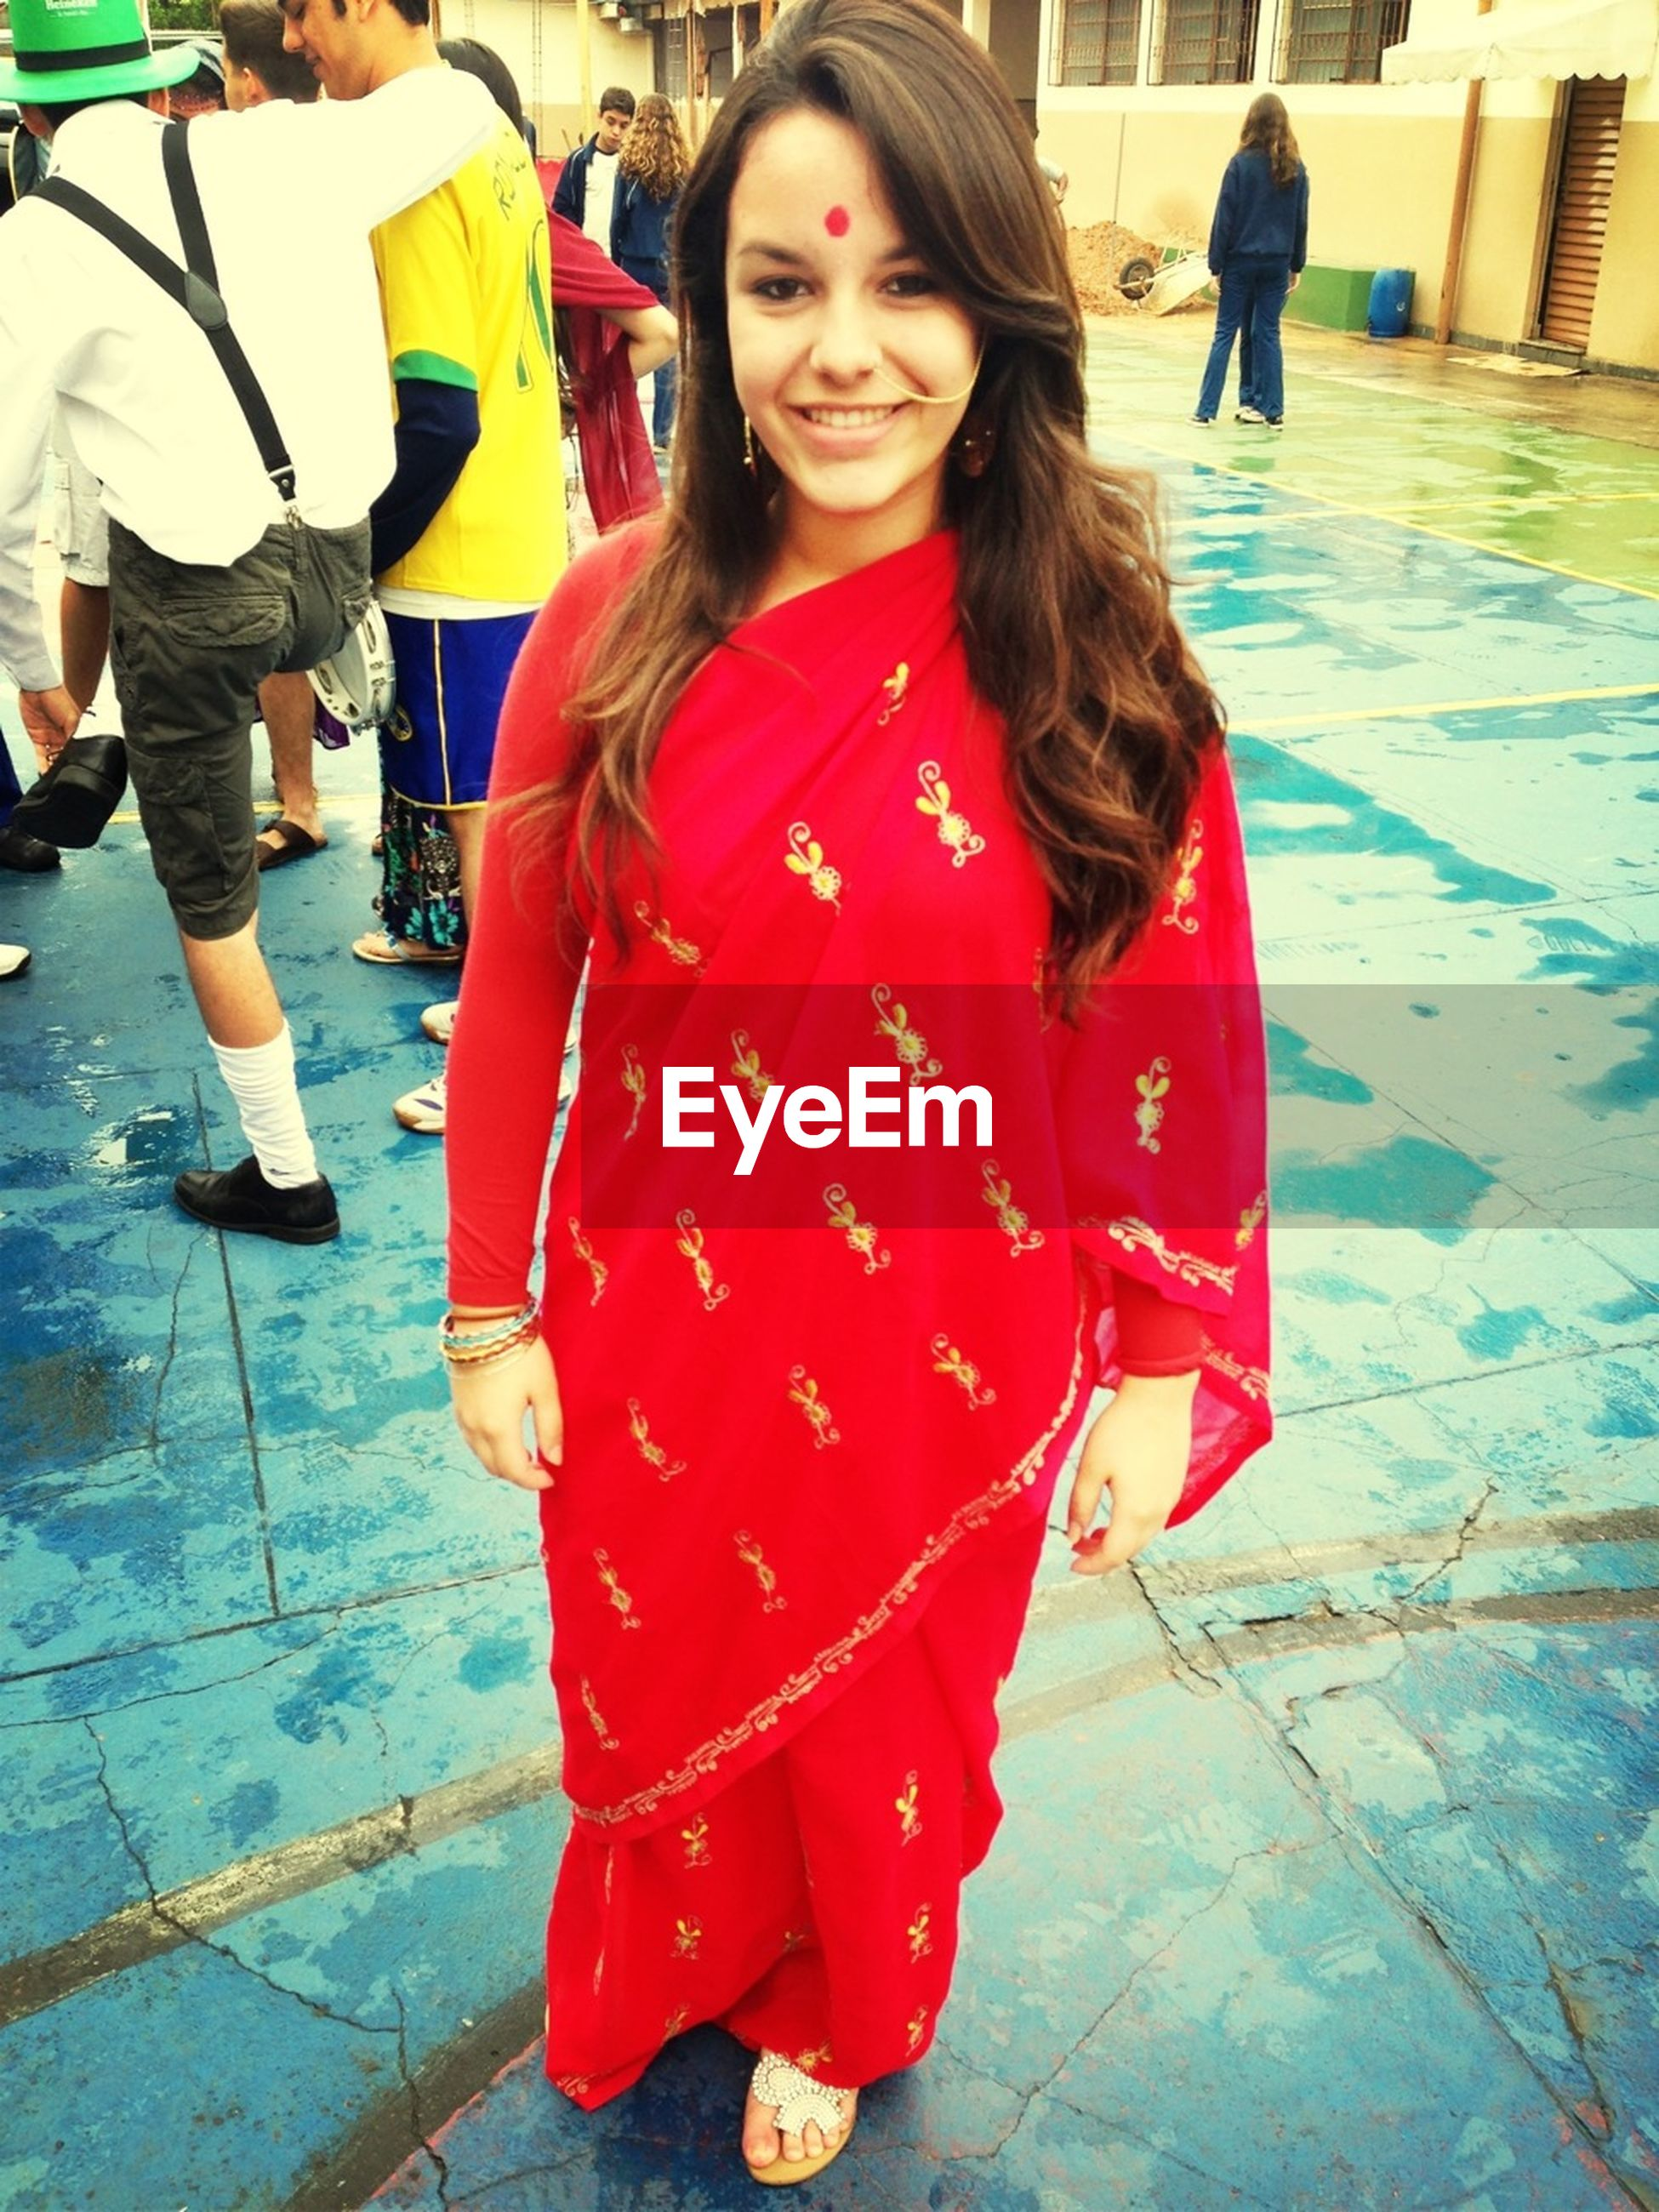 lifestyles, casual clothing, leisure activity, red, standing, front view, person, full length, looking at camera, portrait, smiling, young women, traditional clothing, girls, happiness, young adult, holding